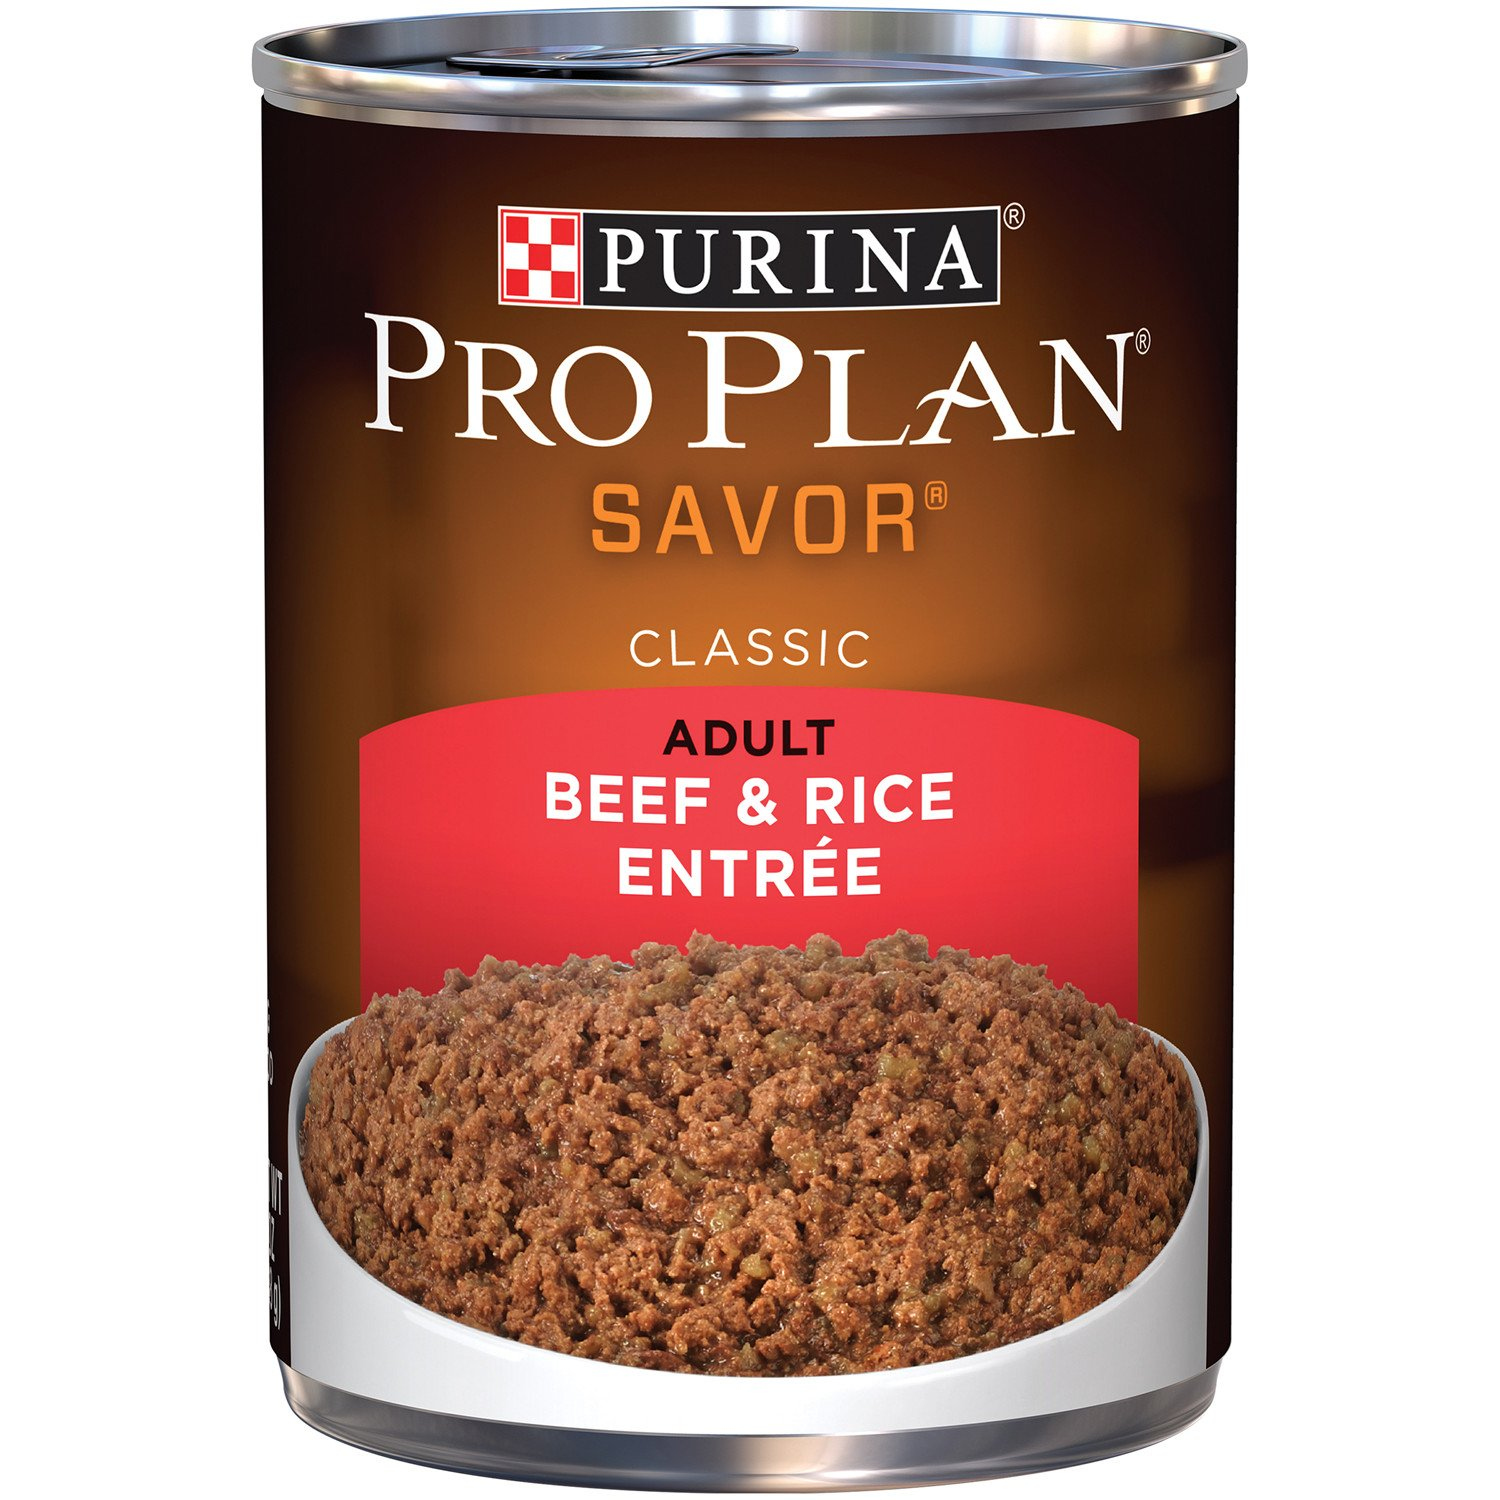 Purina Pro Plan Wet Dog Food, Savor, Adult Beef & Brown Rice Entrée Classic, 13-Ounce Can, Pack of 12